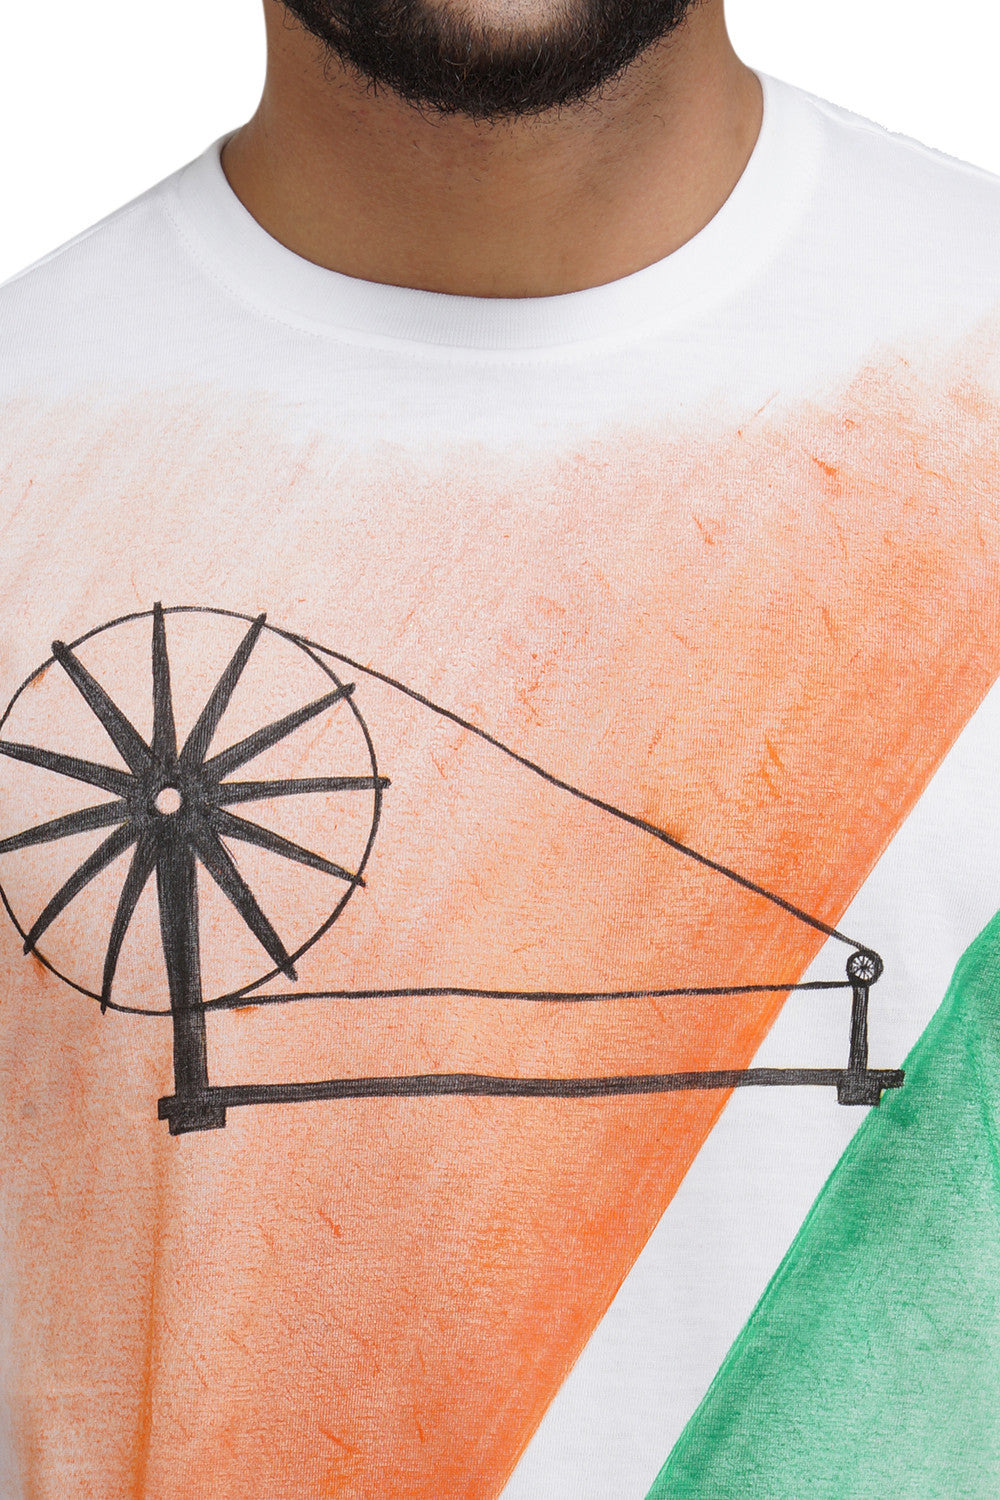 Hand-painted Charkha Tips White T-shirt - Rang Rage  - 5